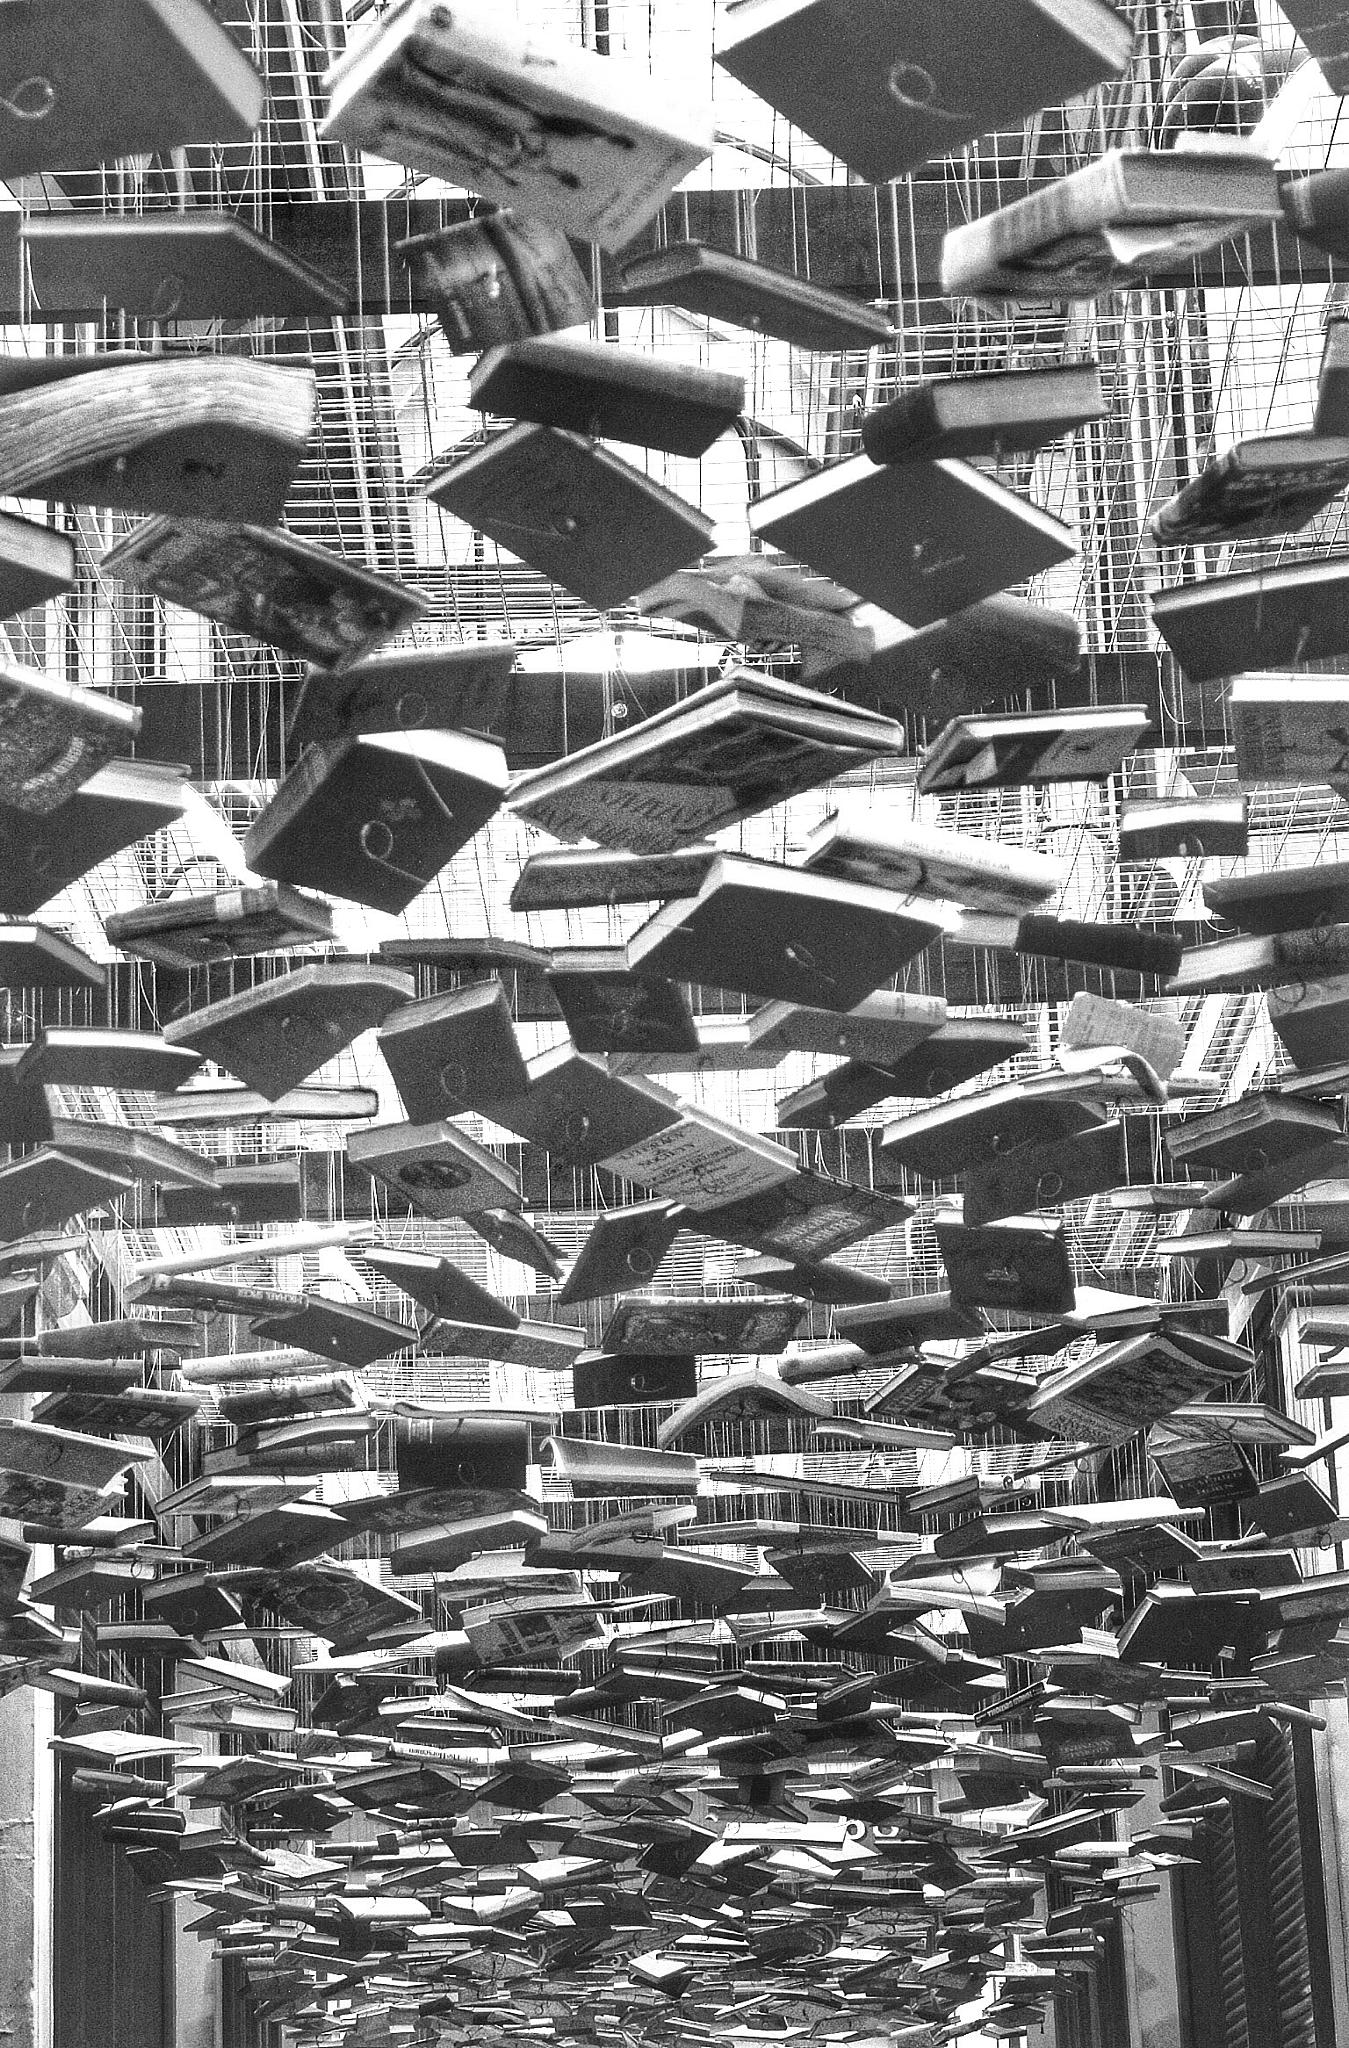 Suspended books by Erol Hasan